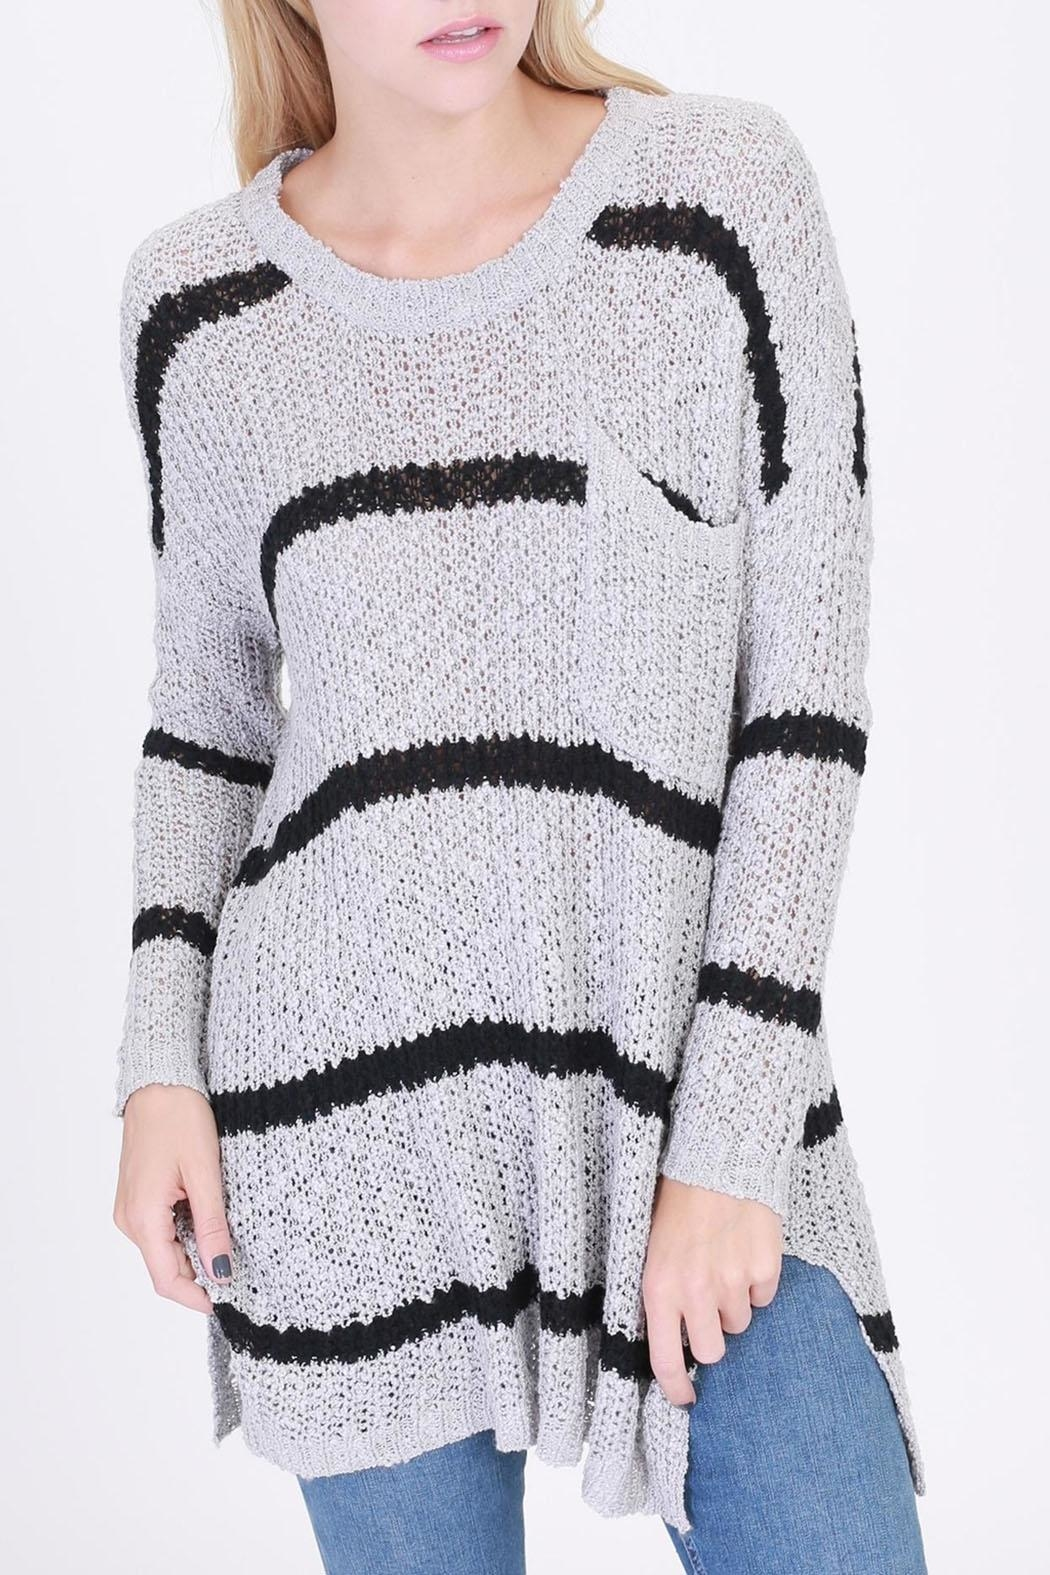 HYFVE Striped Pocketed Sweater - Main Image